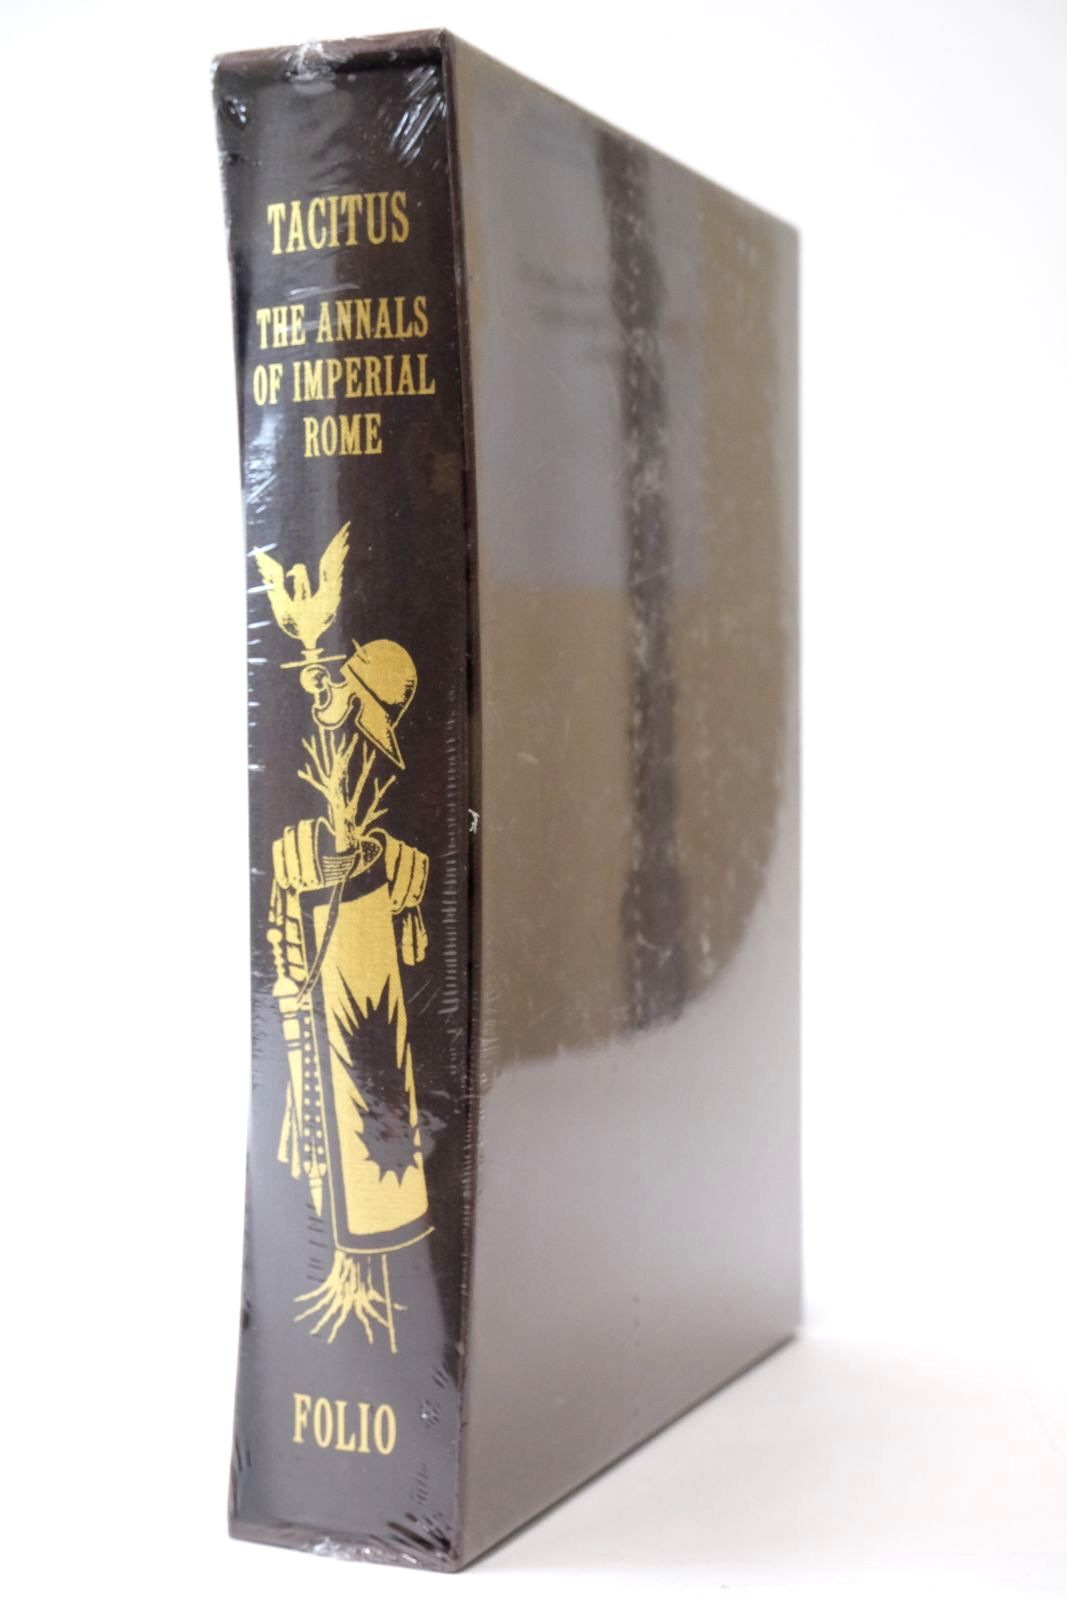 Photo of TACITUS THE ANNALS OF IMPERIAL ROME written by Grant, Michael Rabb, Theodore K. Tacitus, Cornelius published by Folio Society (STOCK CODE: 2135284)  for sale by Stella & Rose's Books